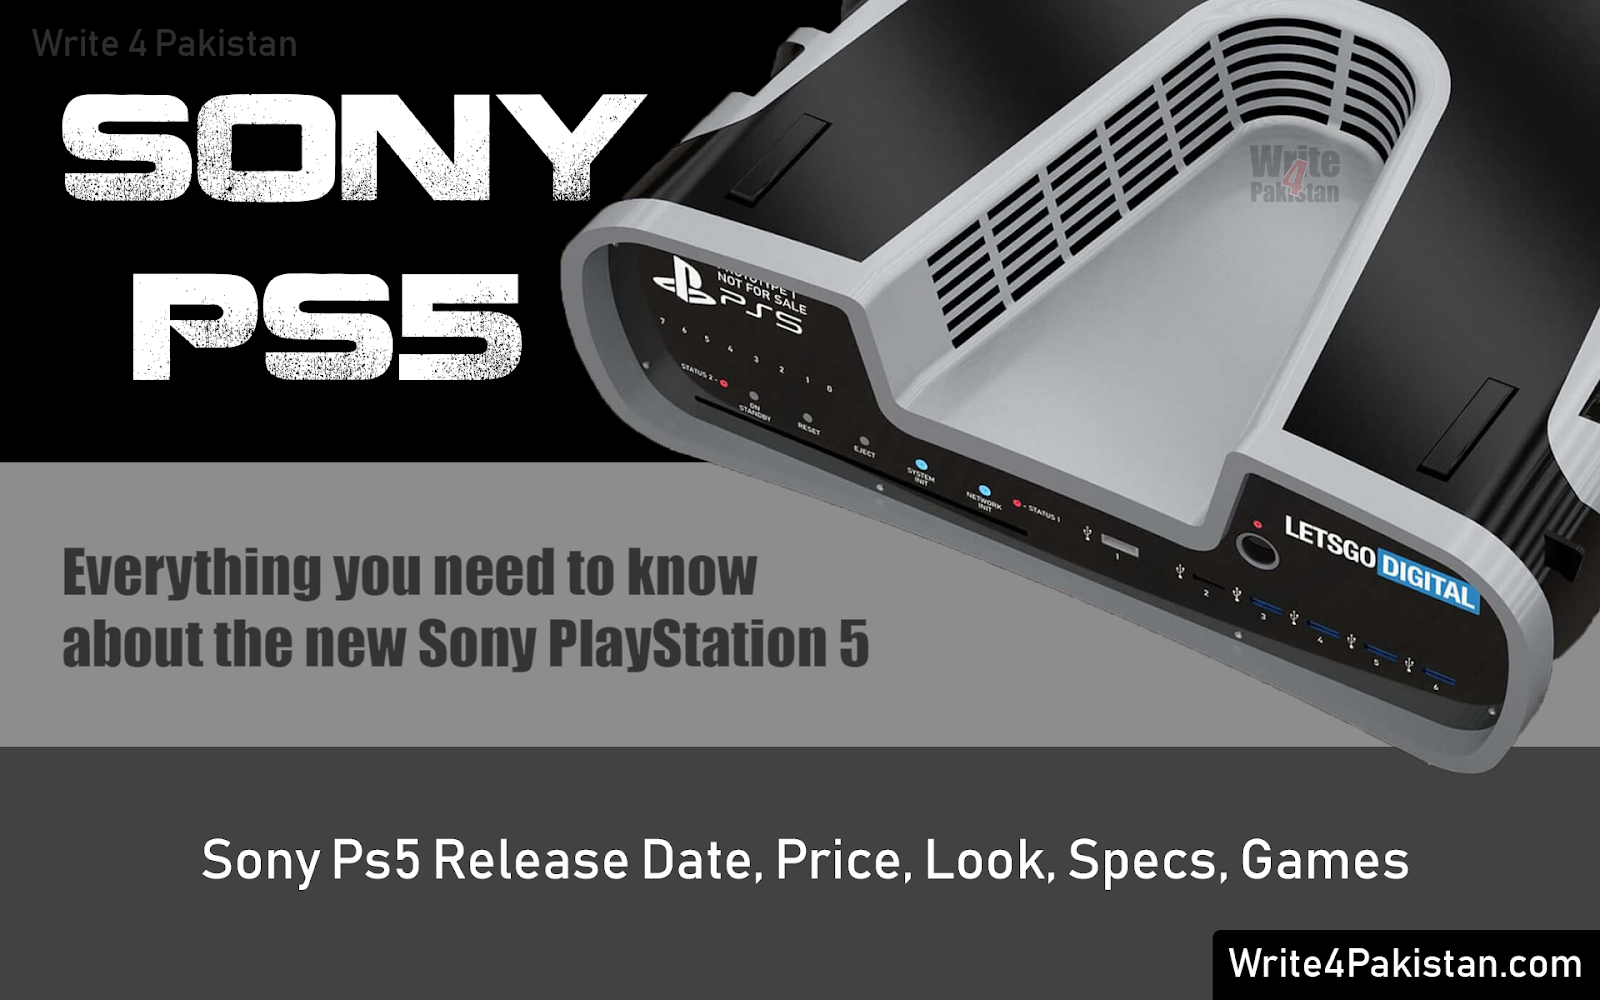 PS5, Playstation 5, SONY PS5, PS5 Release date, ps5 price, ps5 specs, ps5 games, ps5 design, ps5 look, ps5 price in pakistan, ps5 news, ps5 price pakistan, ps5 release date in pakistan